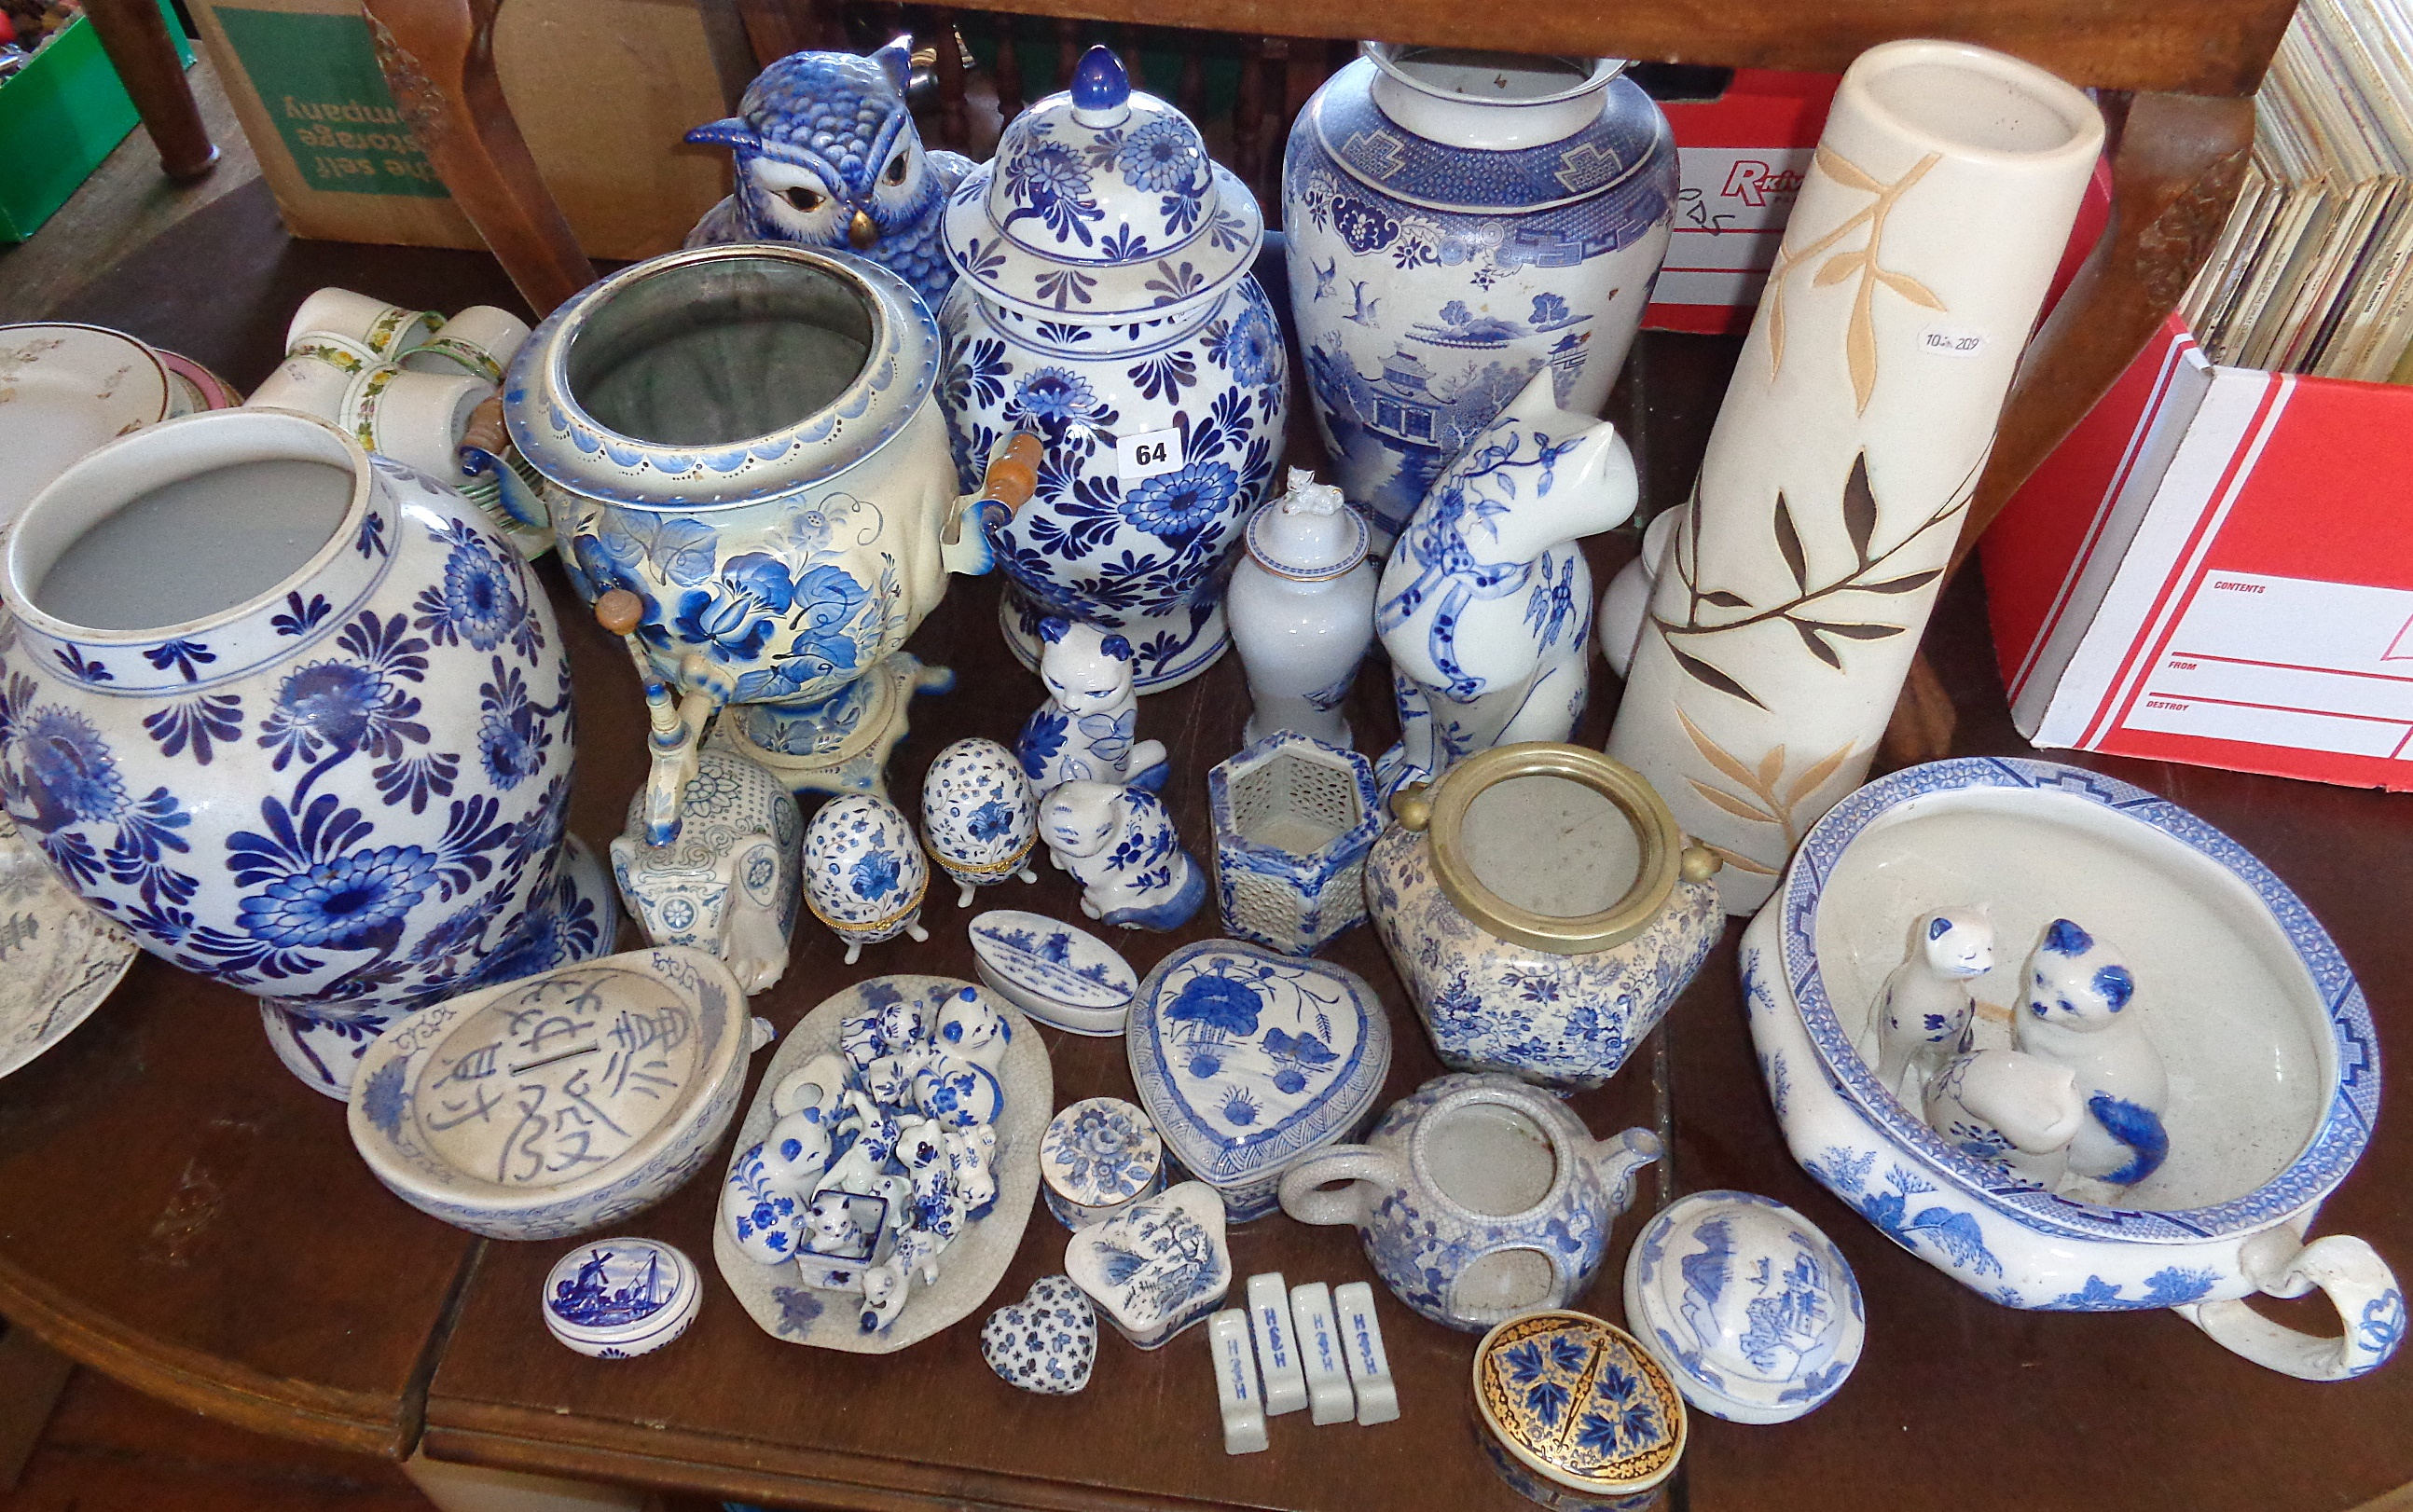 Lot 64 - Large collection of blue and white china including modern Chinese and Delft vases and ornaments